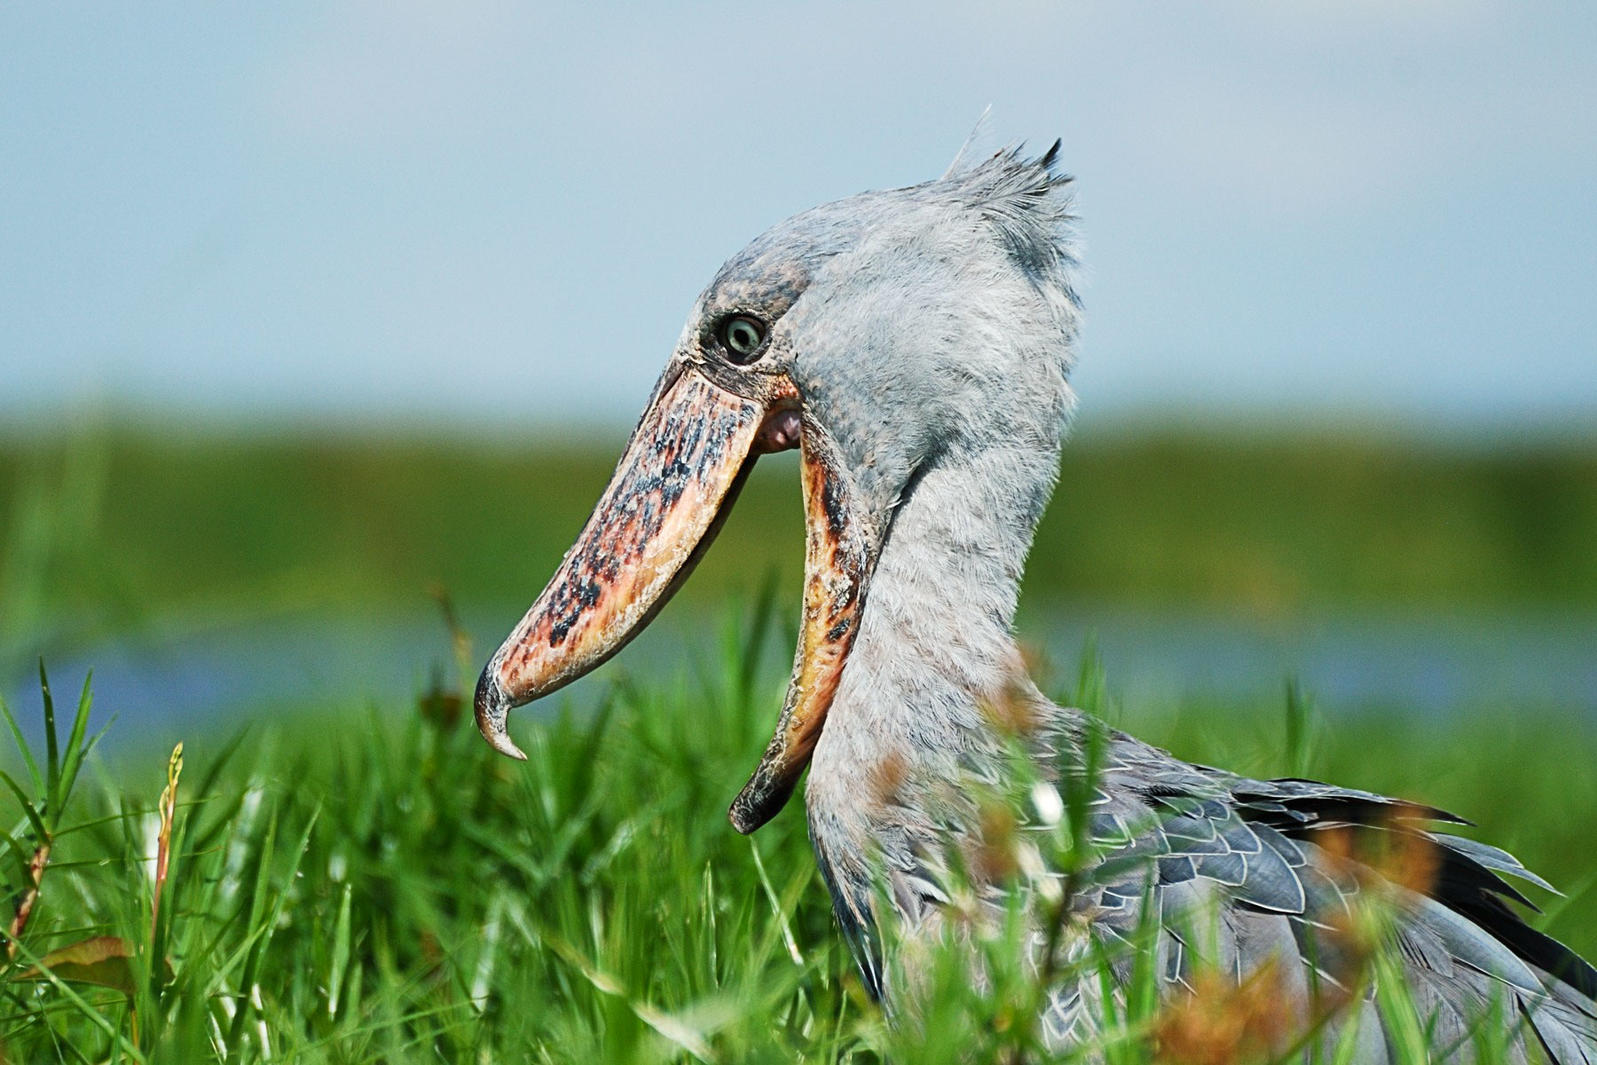 The Shoebill: Or, the Most Terrifying Bird in the World | Audubon